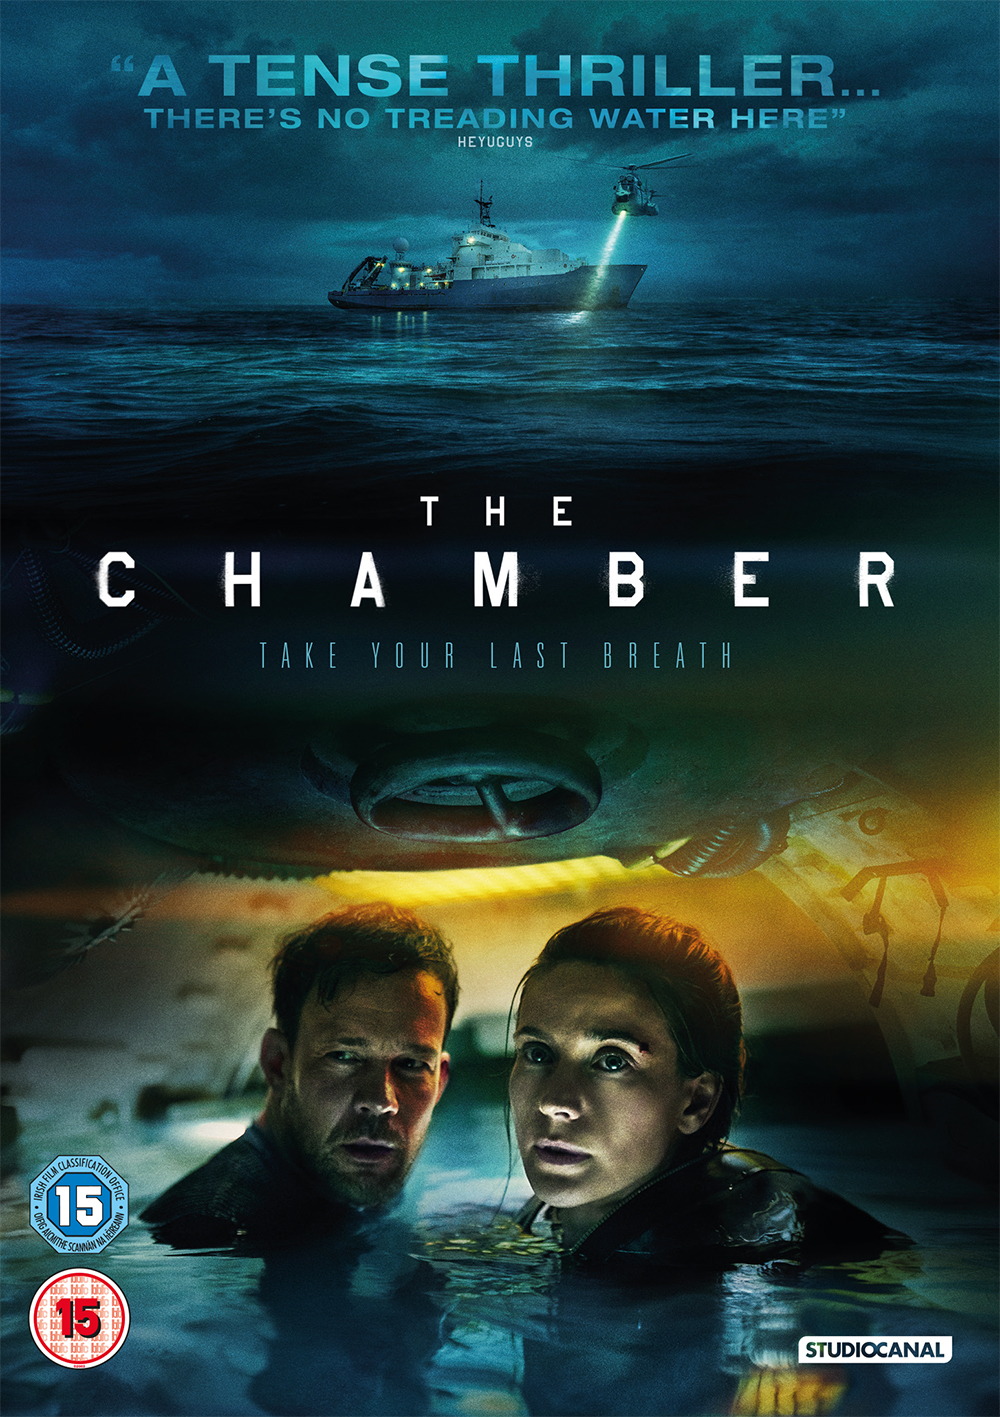 The Chamber, out on DVD